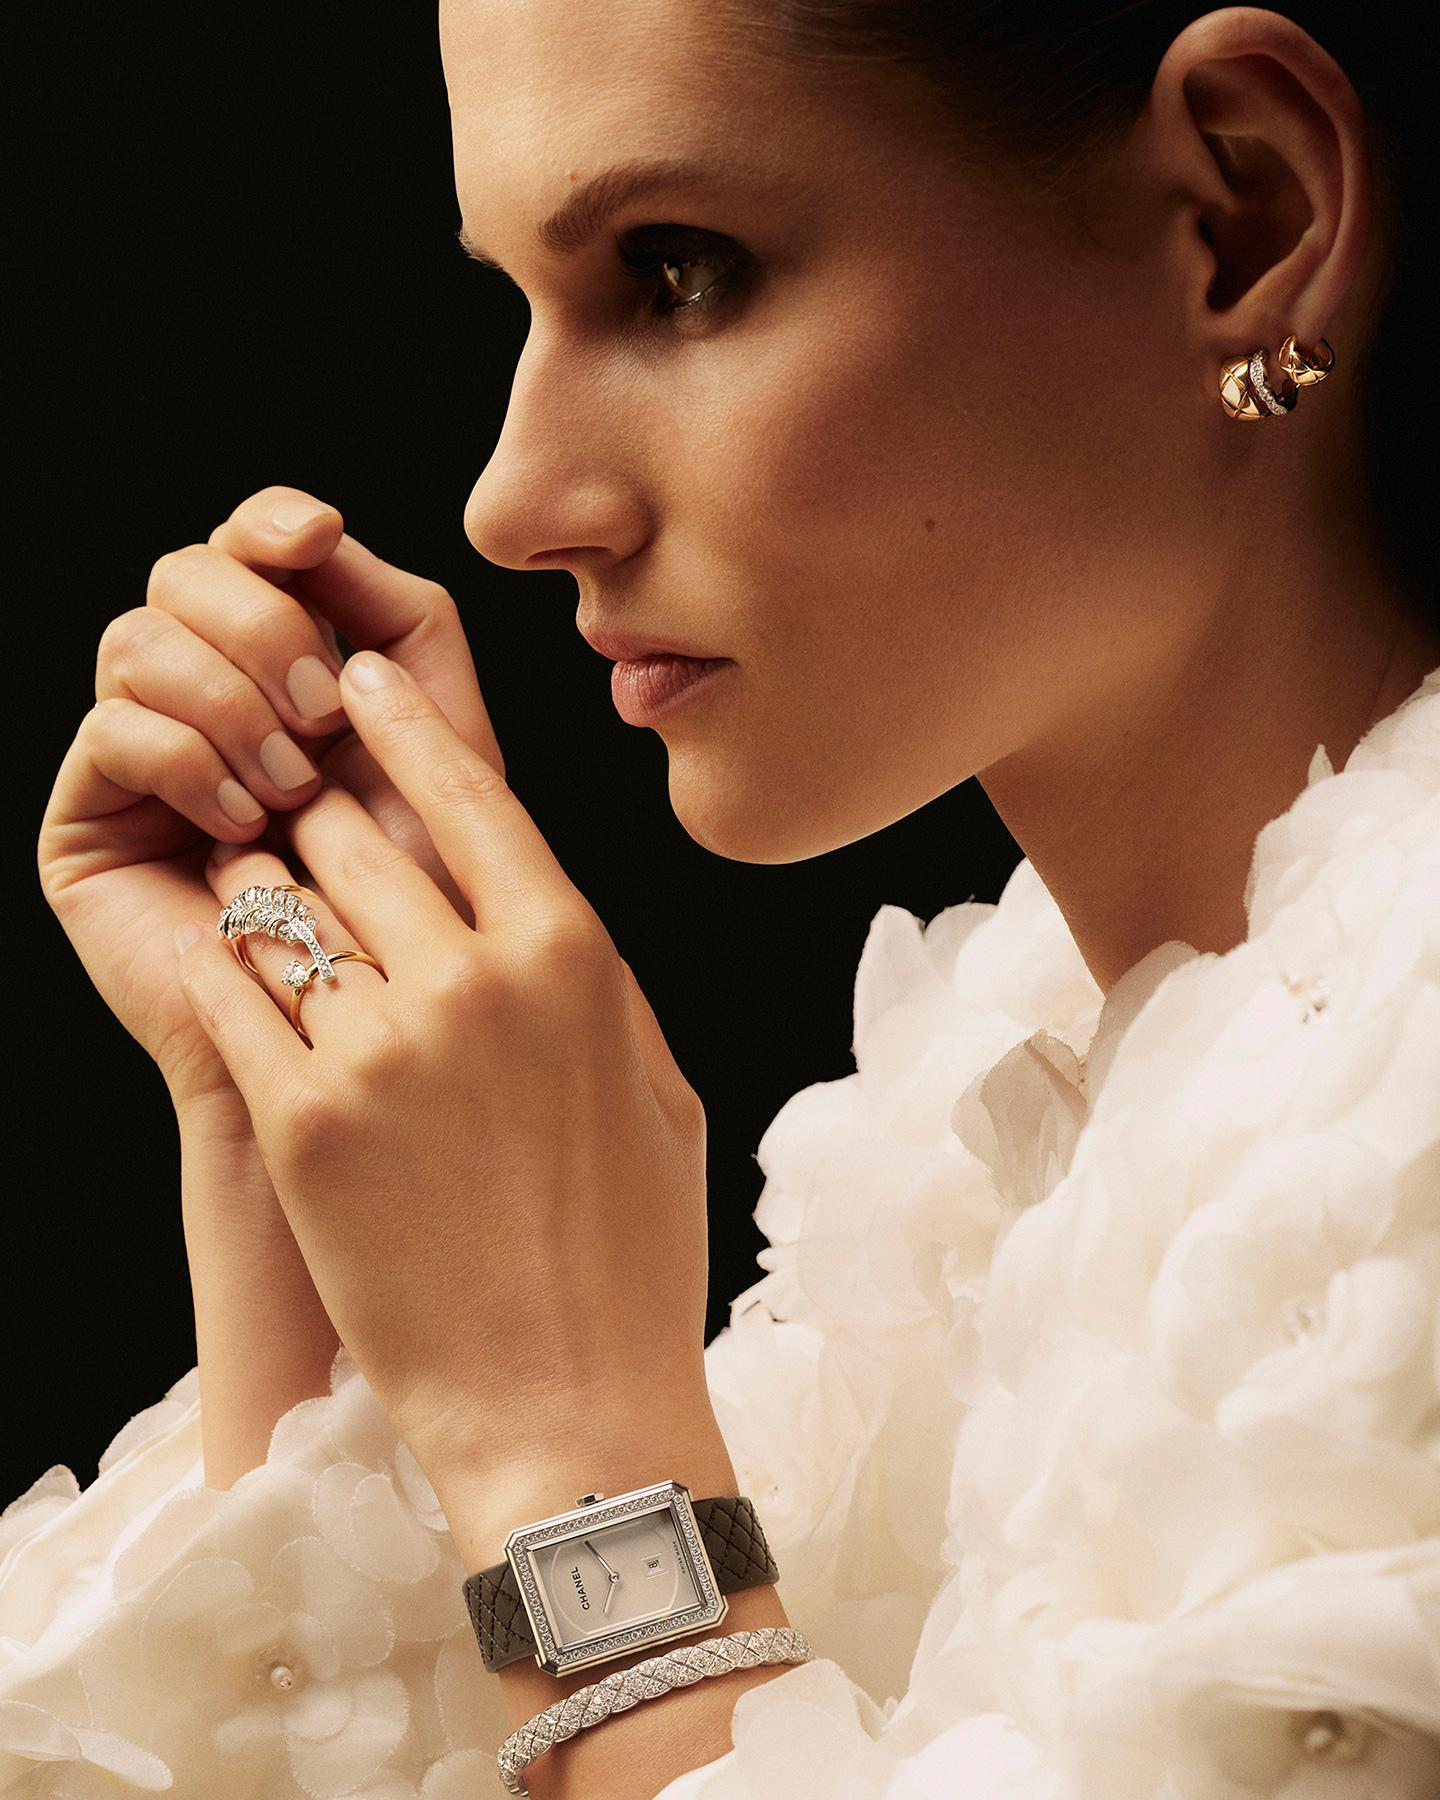 model wearing a COCO CRUSH earring, a PLUME de CHANEL ring, a BOY·FRIEND watch and a COCO CRUSH bracelet